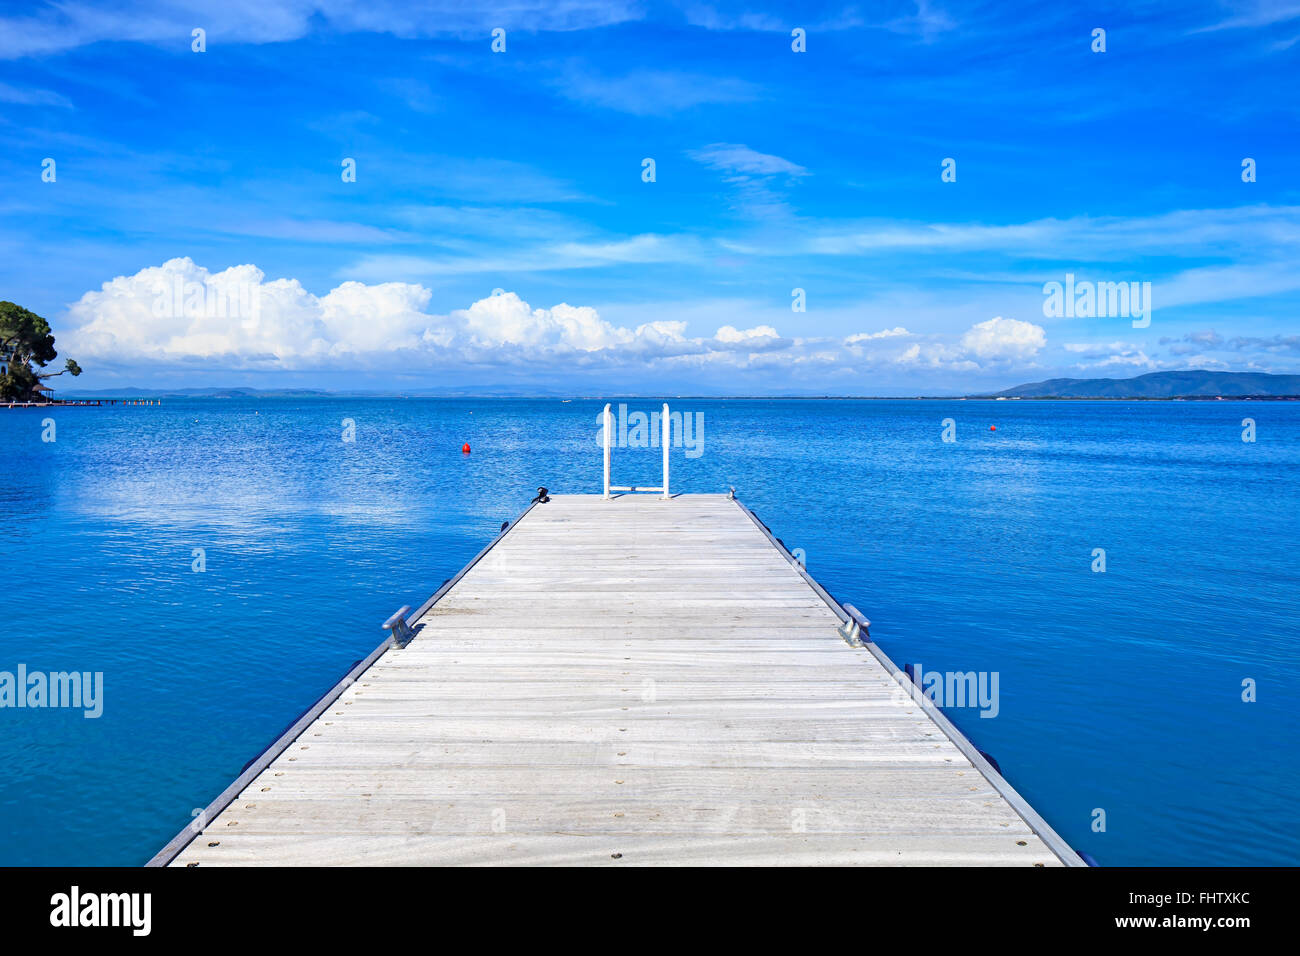 Wooden pier or jetty on a blue ocean and clear sky. Bay beach in Monte Argentario, Porto Santo Stefano, Tuscany, - Stock Image